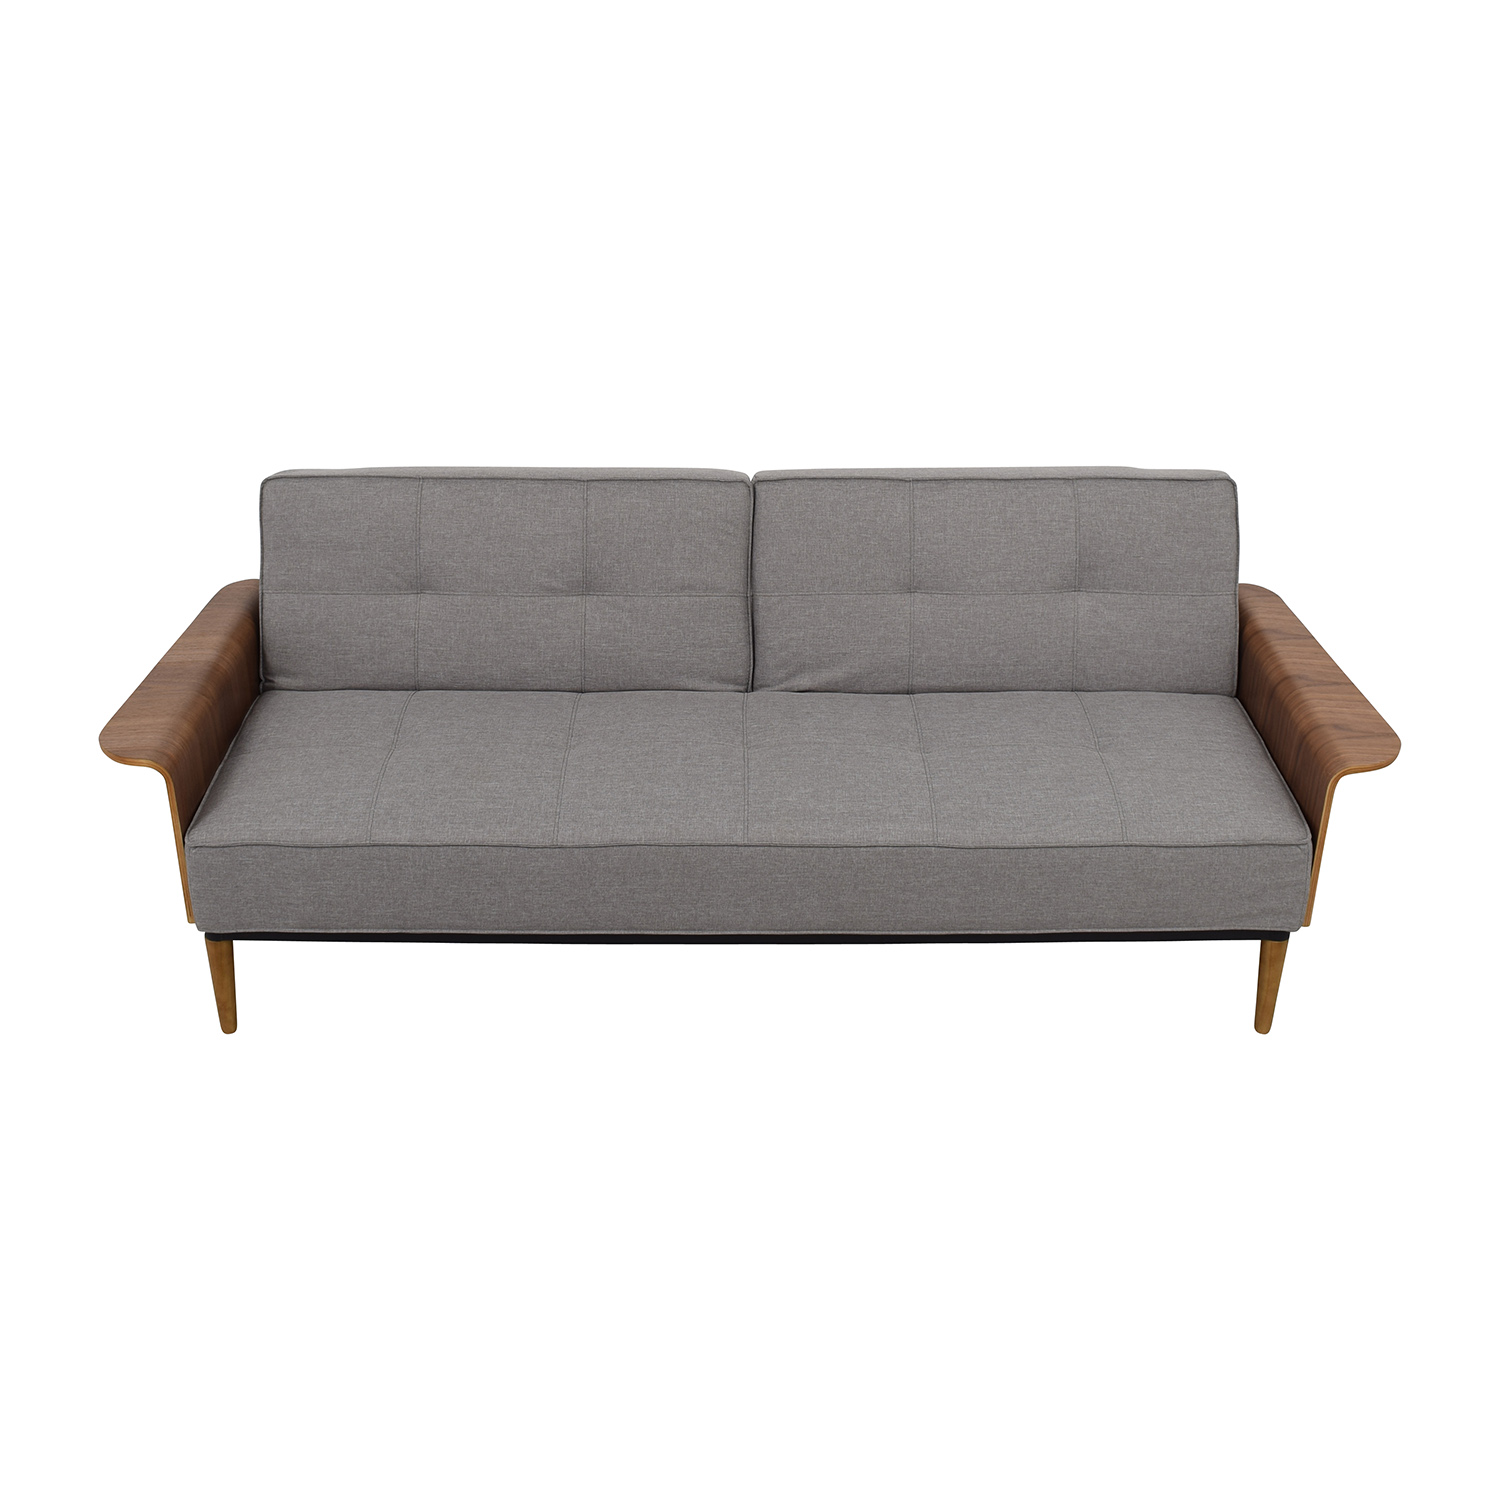 Inmod Inmod Bjorg Tufted Light Grey Sofabed dimensions